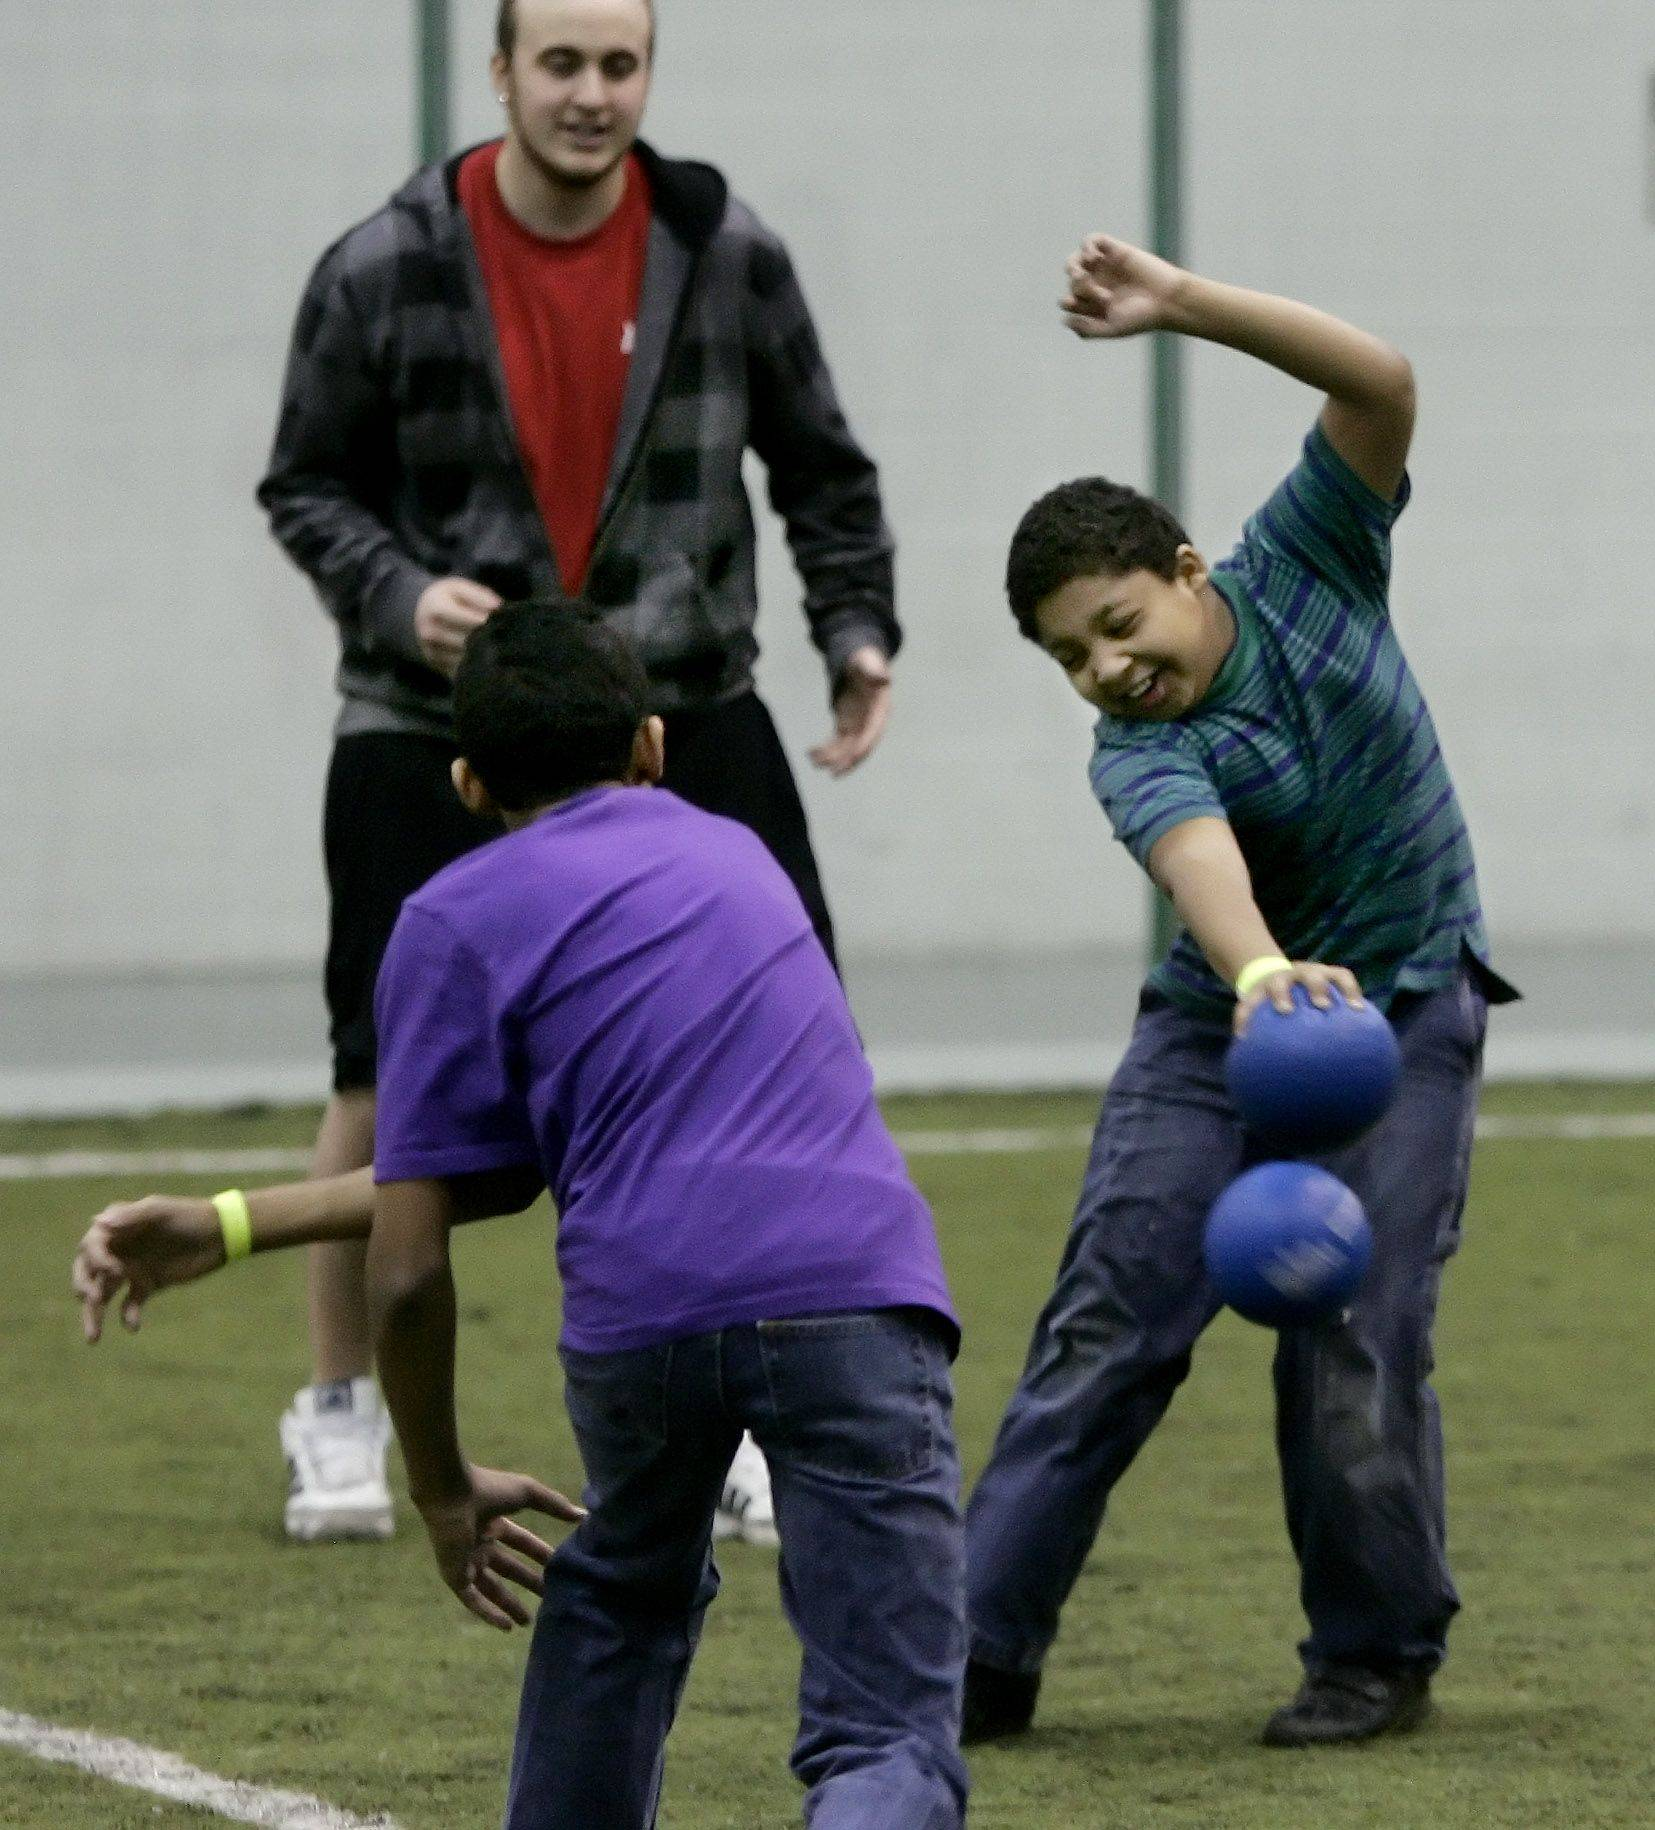 Adrian Garcia, 9, is hit by a throw from Andrew Lewis, 13, as the boys, both of Gurnee, play dodgeball during Open Gym Week last month at the Libertyville Sports Complex. The fitness center offered a host of activities during winter break to keep students active.